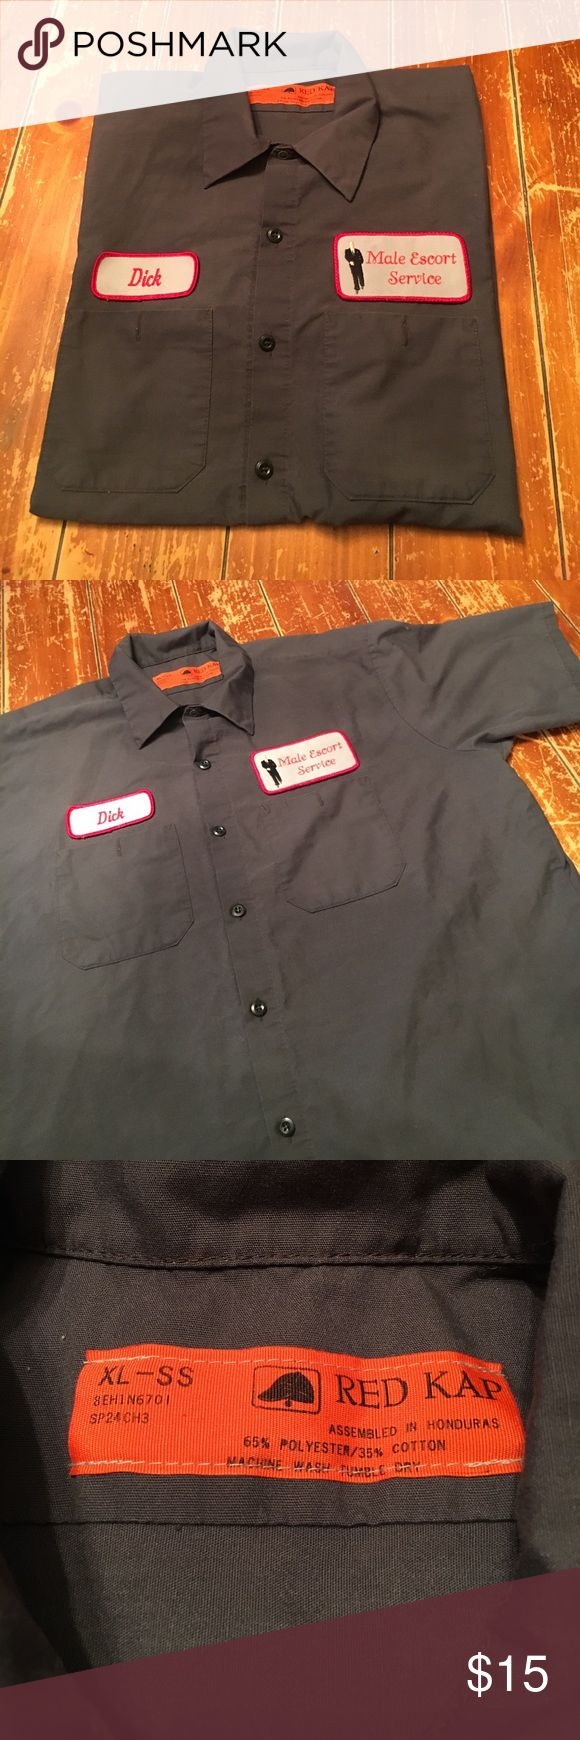 """Dick shirt Men's short sleeve button up dick shirt. Dickies style uniform shirt. Patches say- """"Male escort service"""" name tag says- """"Dick""""   There is a small dark colored stain on the back as shown in pic. XL.  I have a dog and will try to remove any hairs before shipping. Red Kap Shirts Casual Button Down Shirts"""